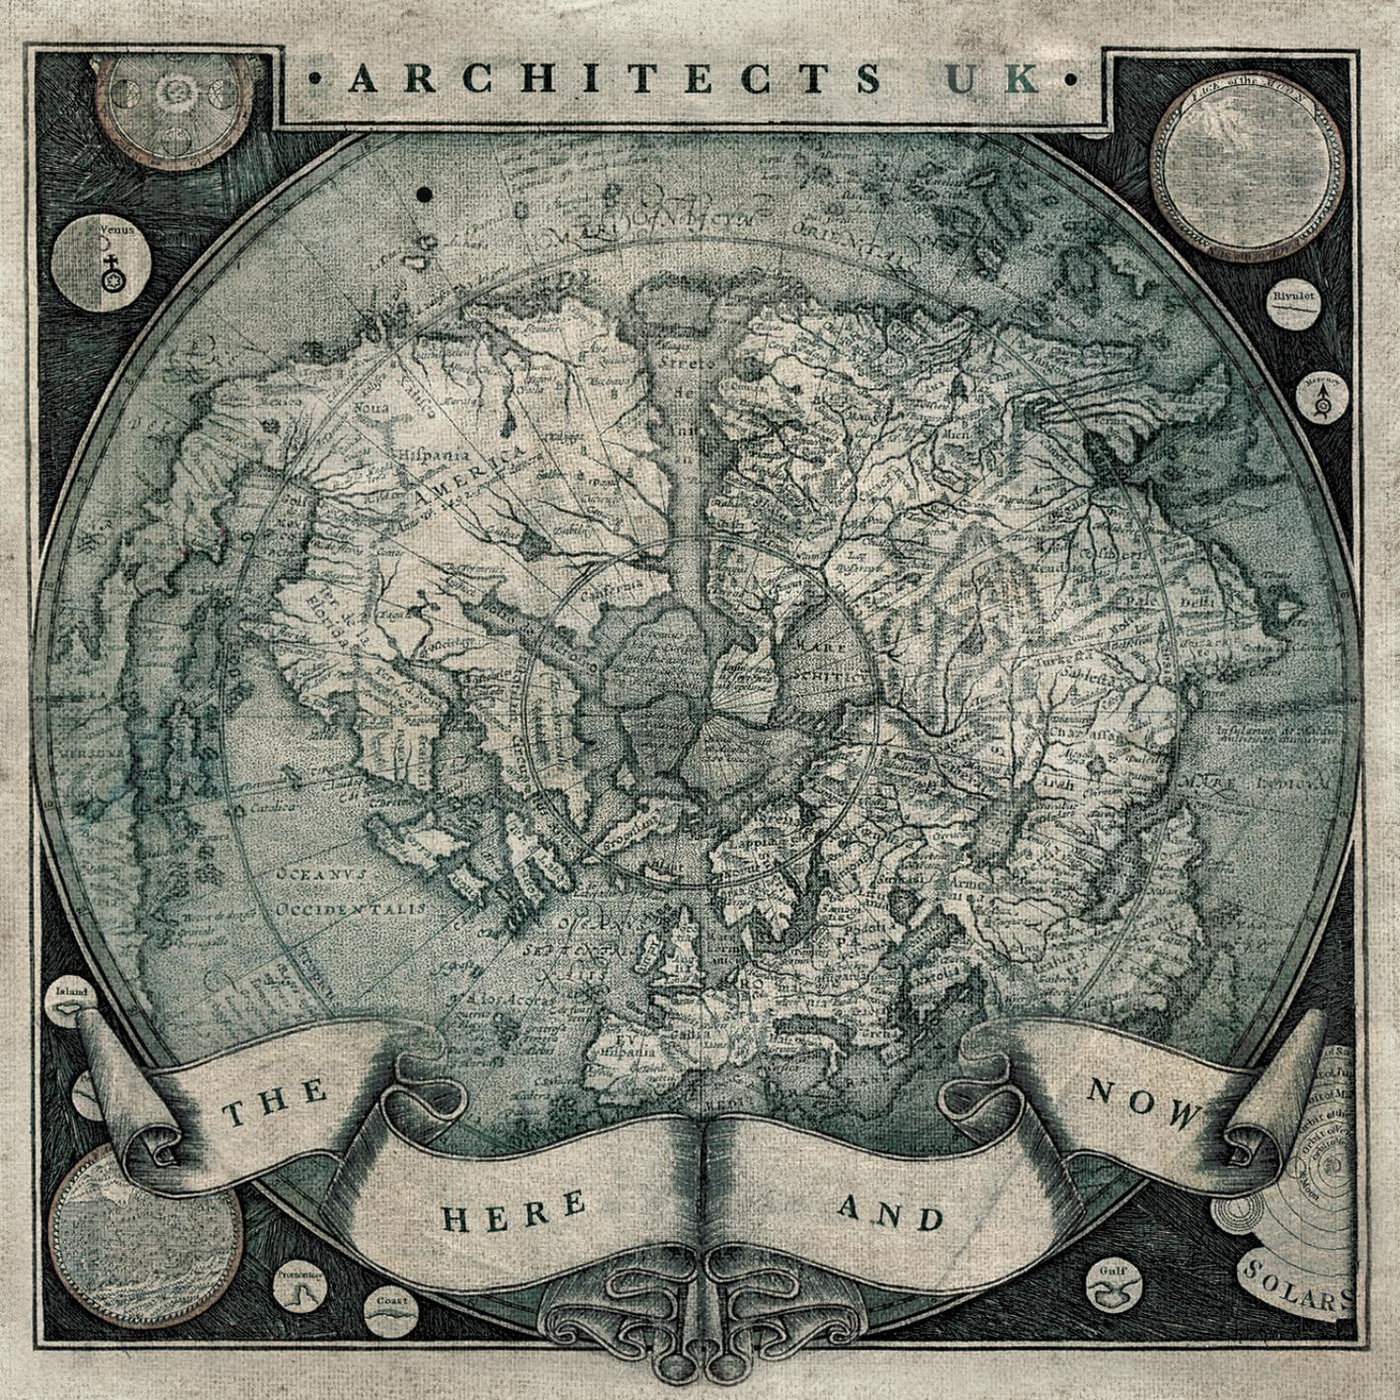 Architects - The Here and Now [Special Edition] (2012)